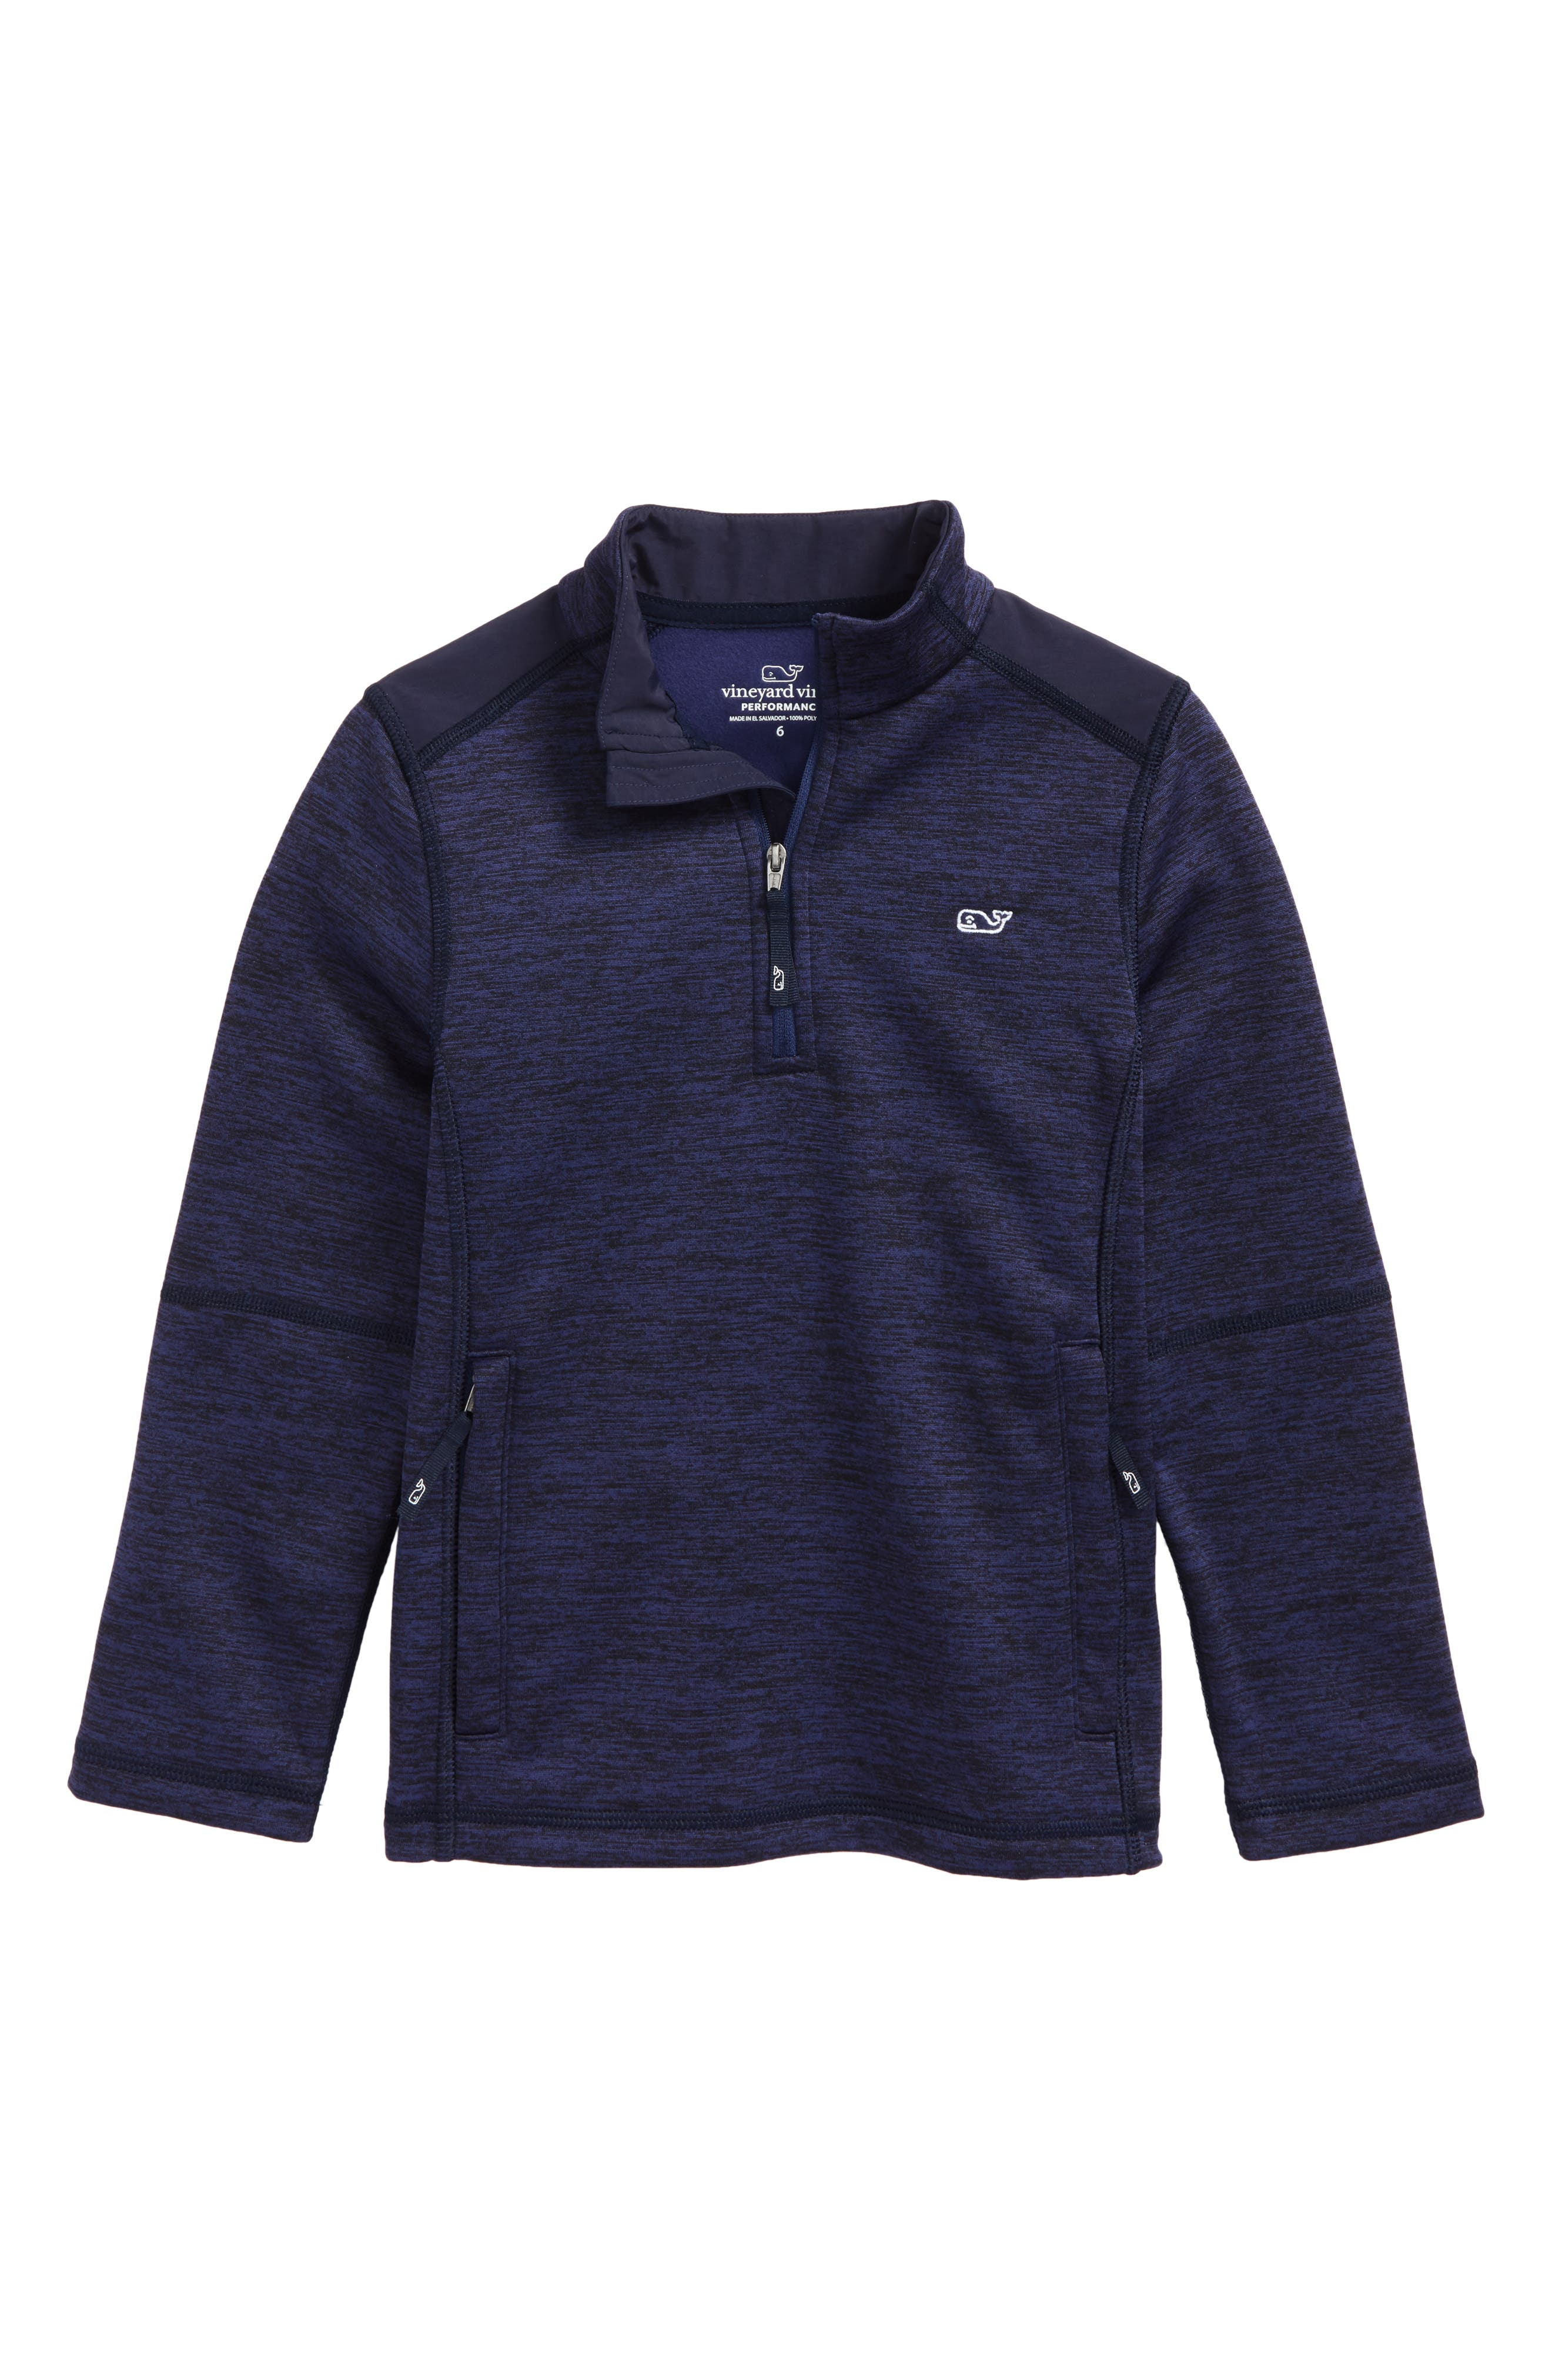 Performance Quarter Zip Pullover,                         Main,                         color, Night Bay